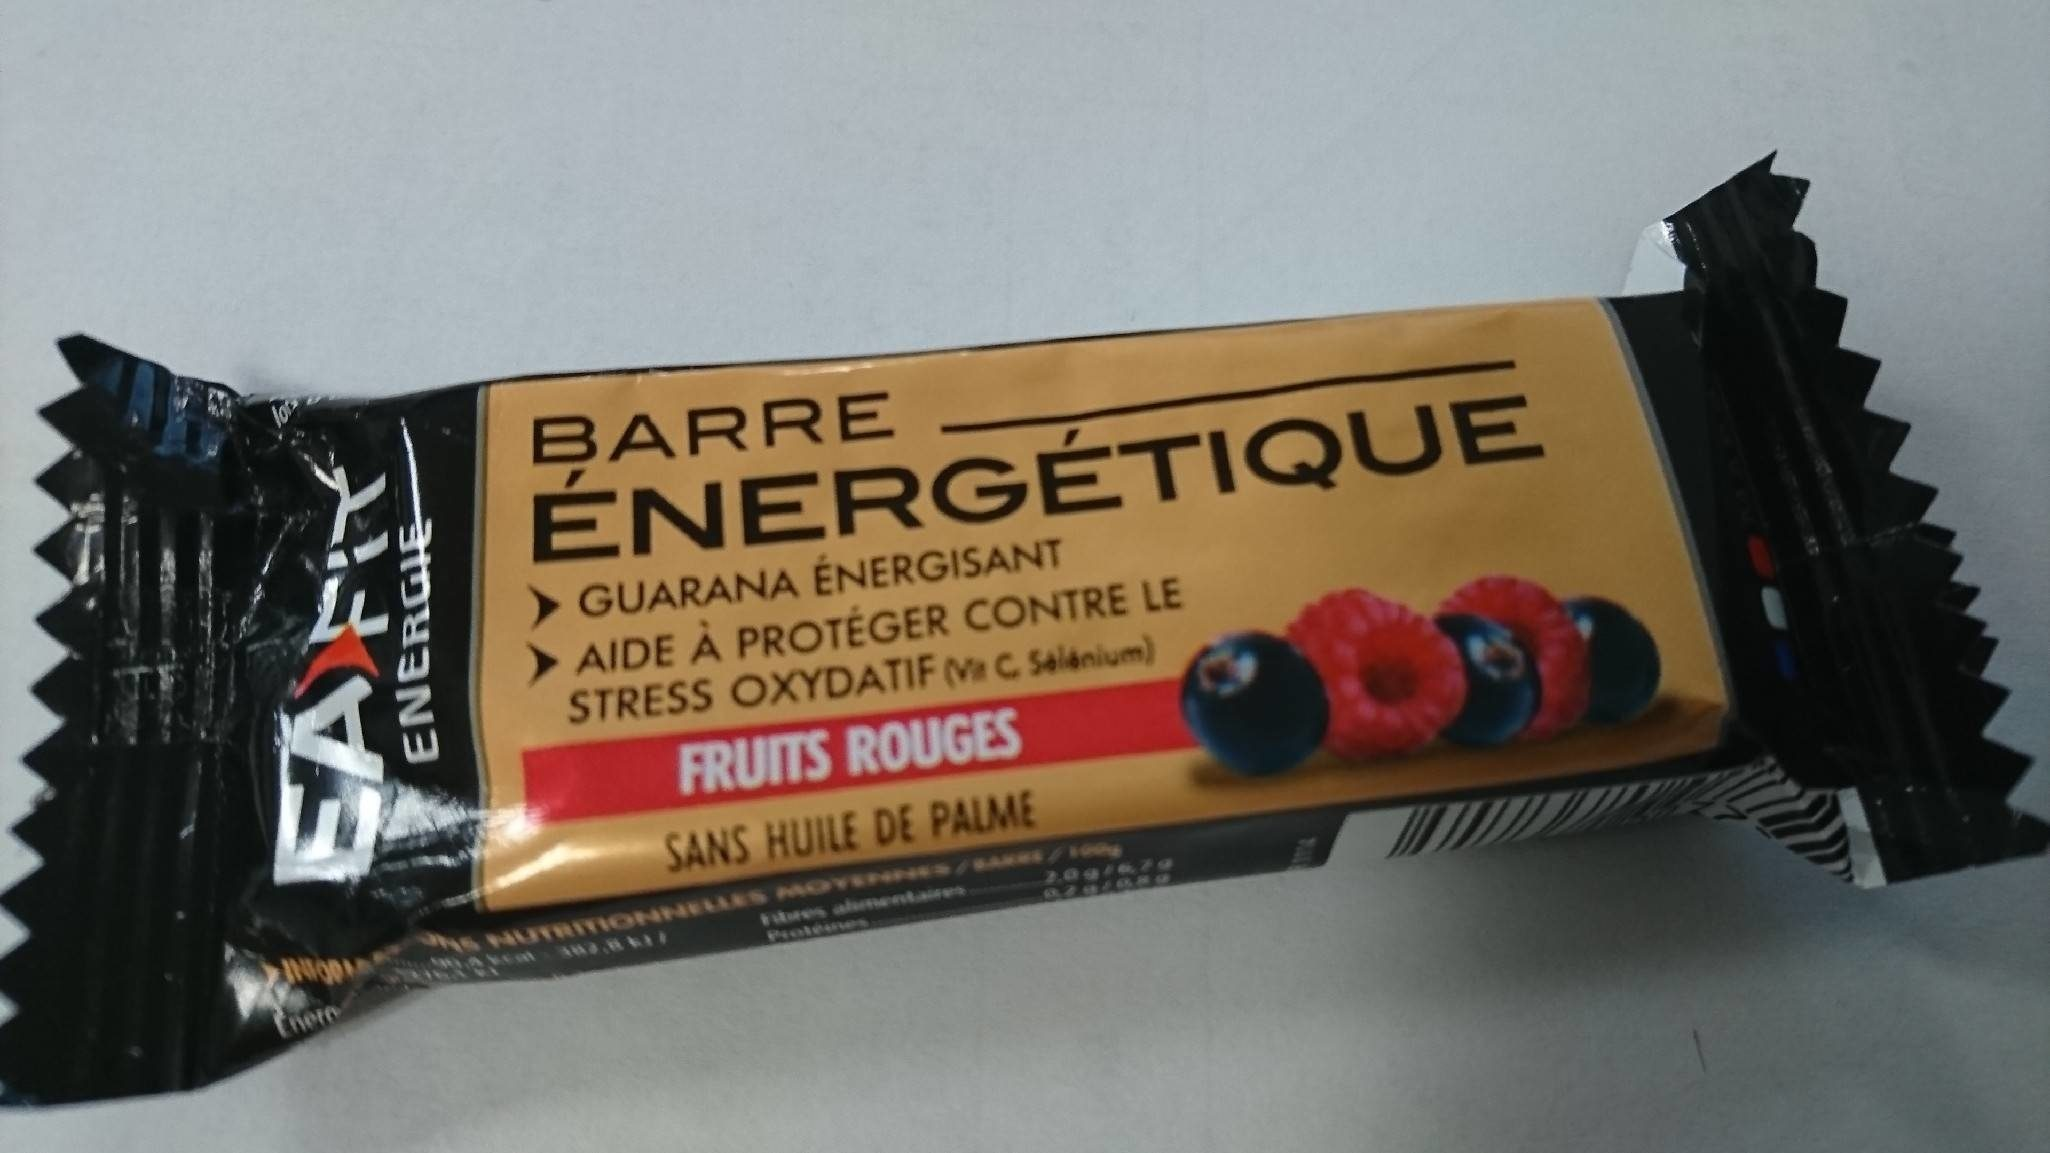 Barre Energetique Fruits Rouge - Product